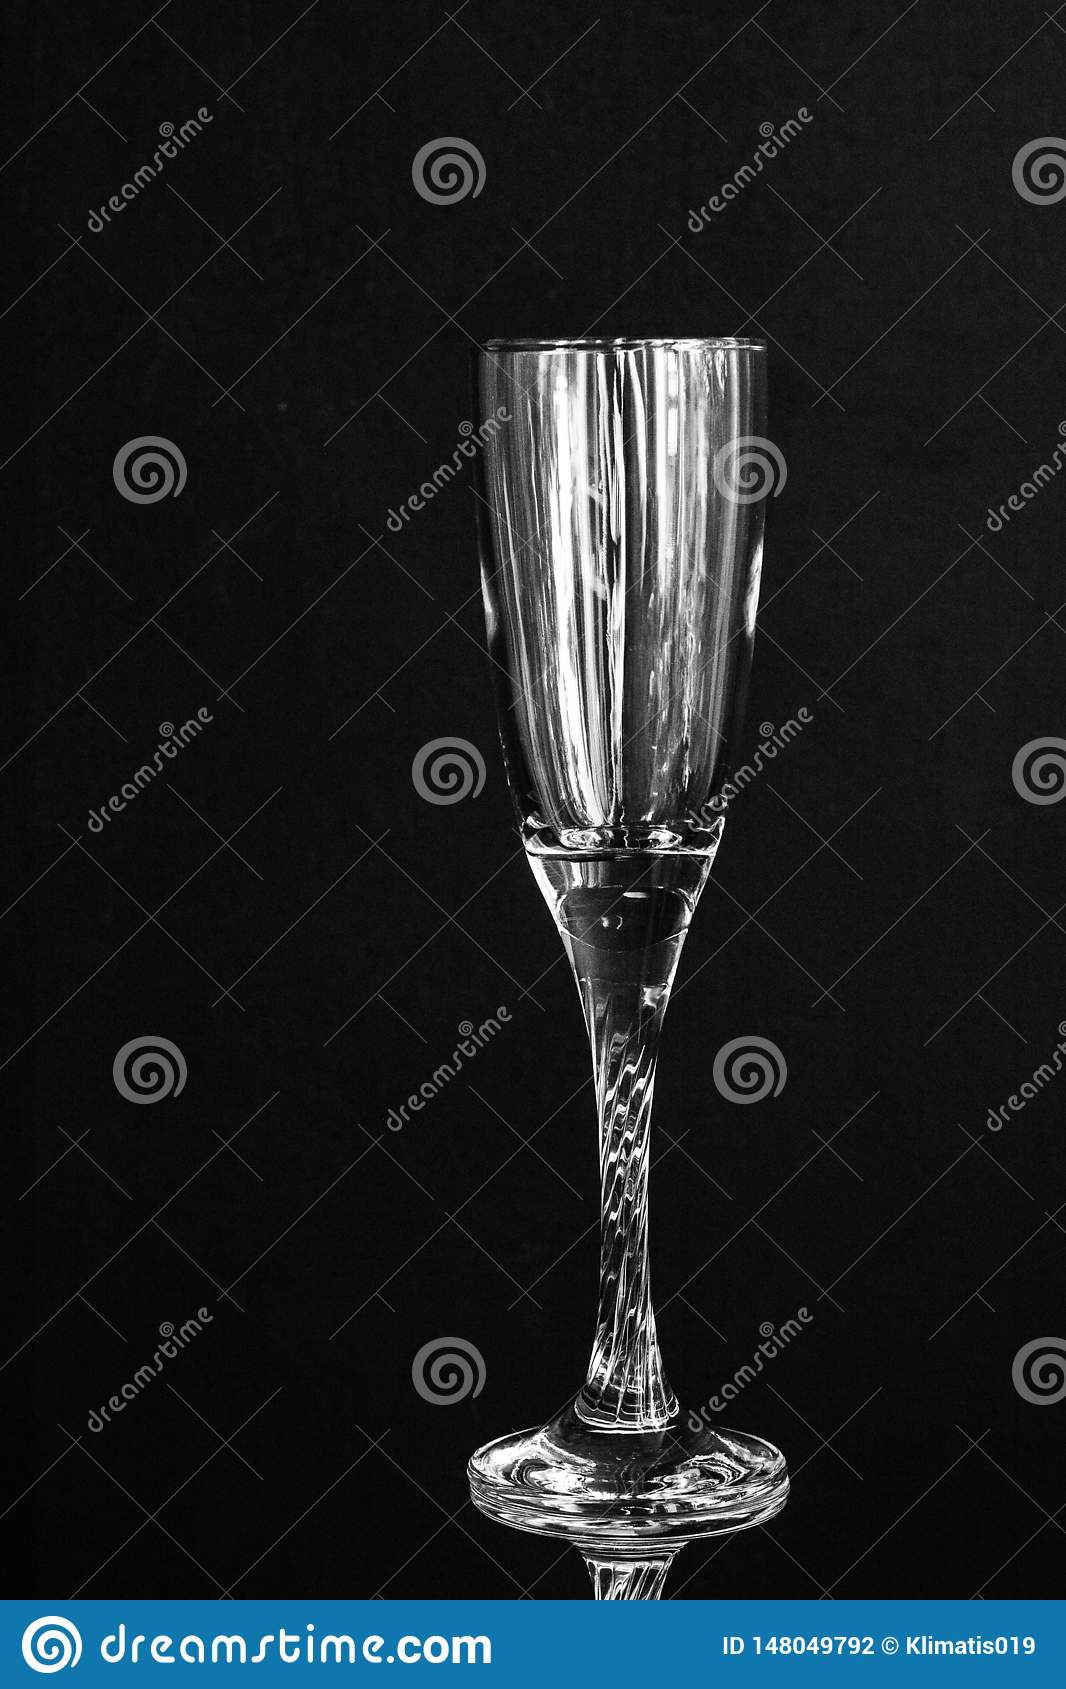 Transparent champagne glass empty on black background.